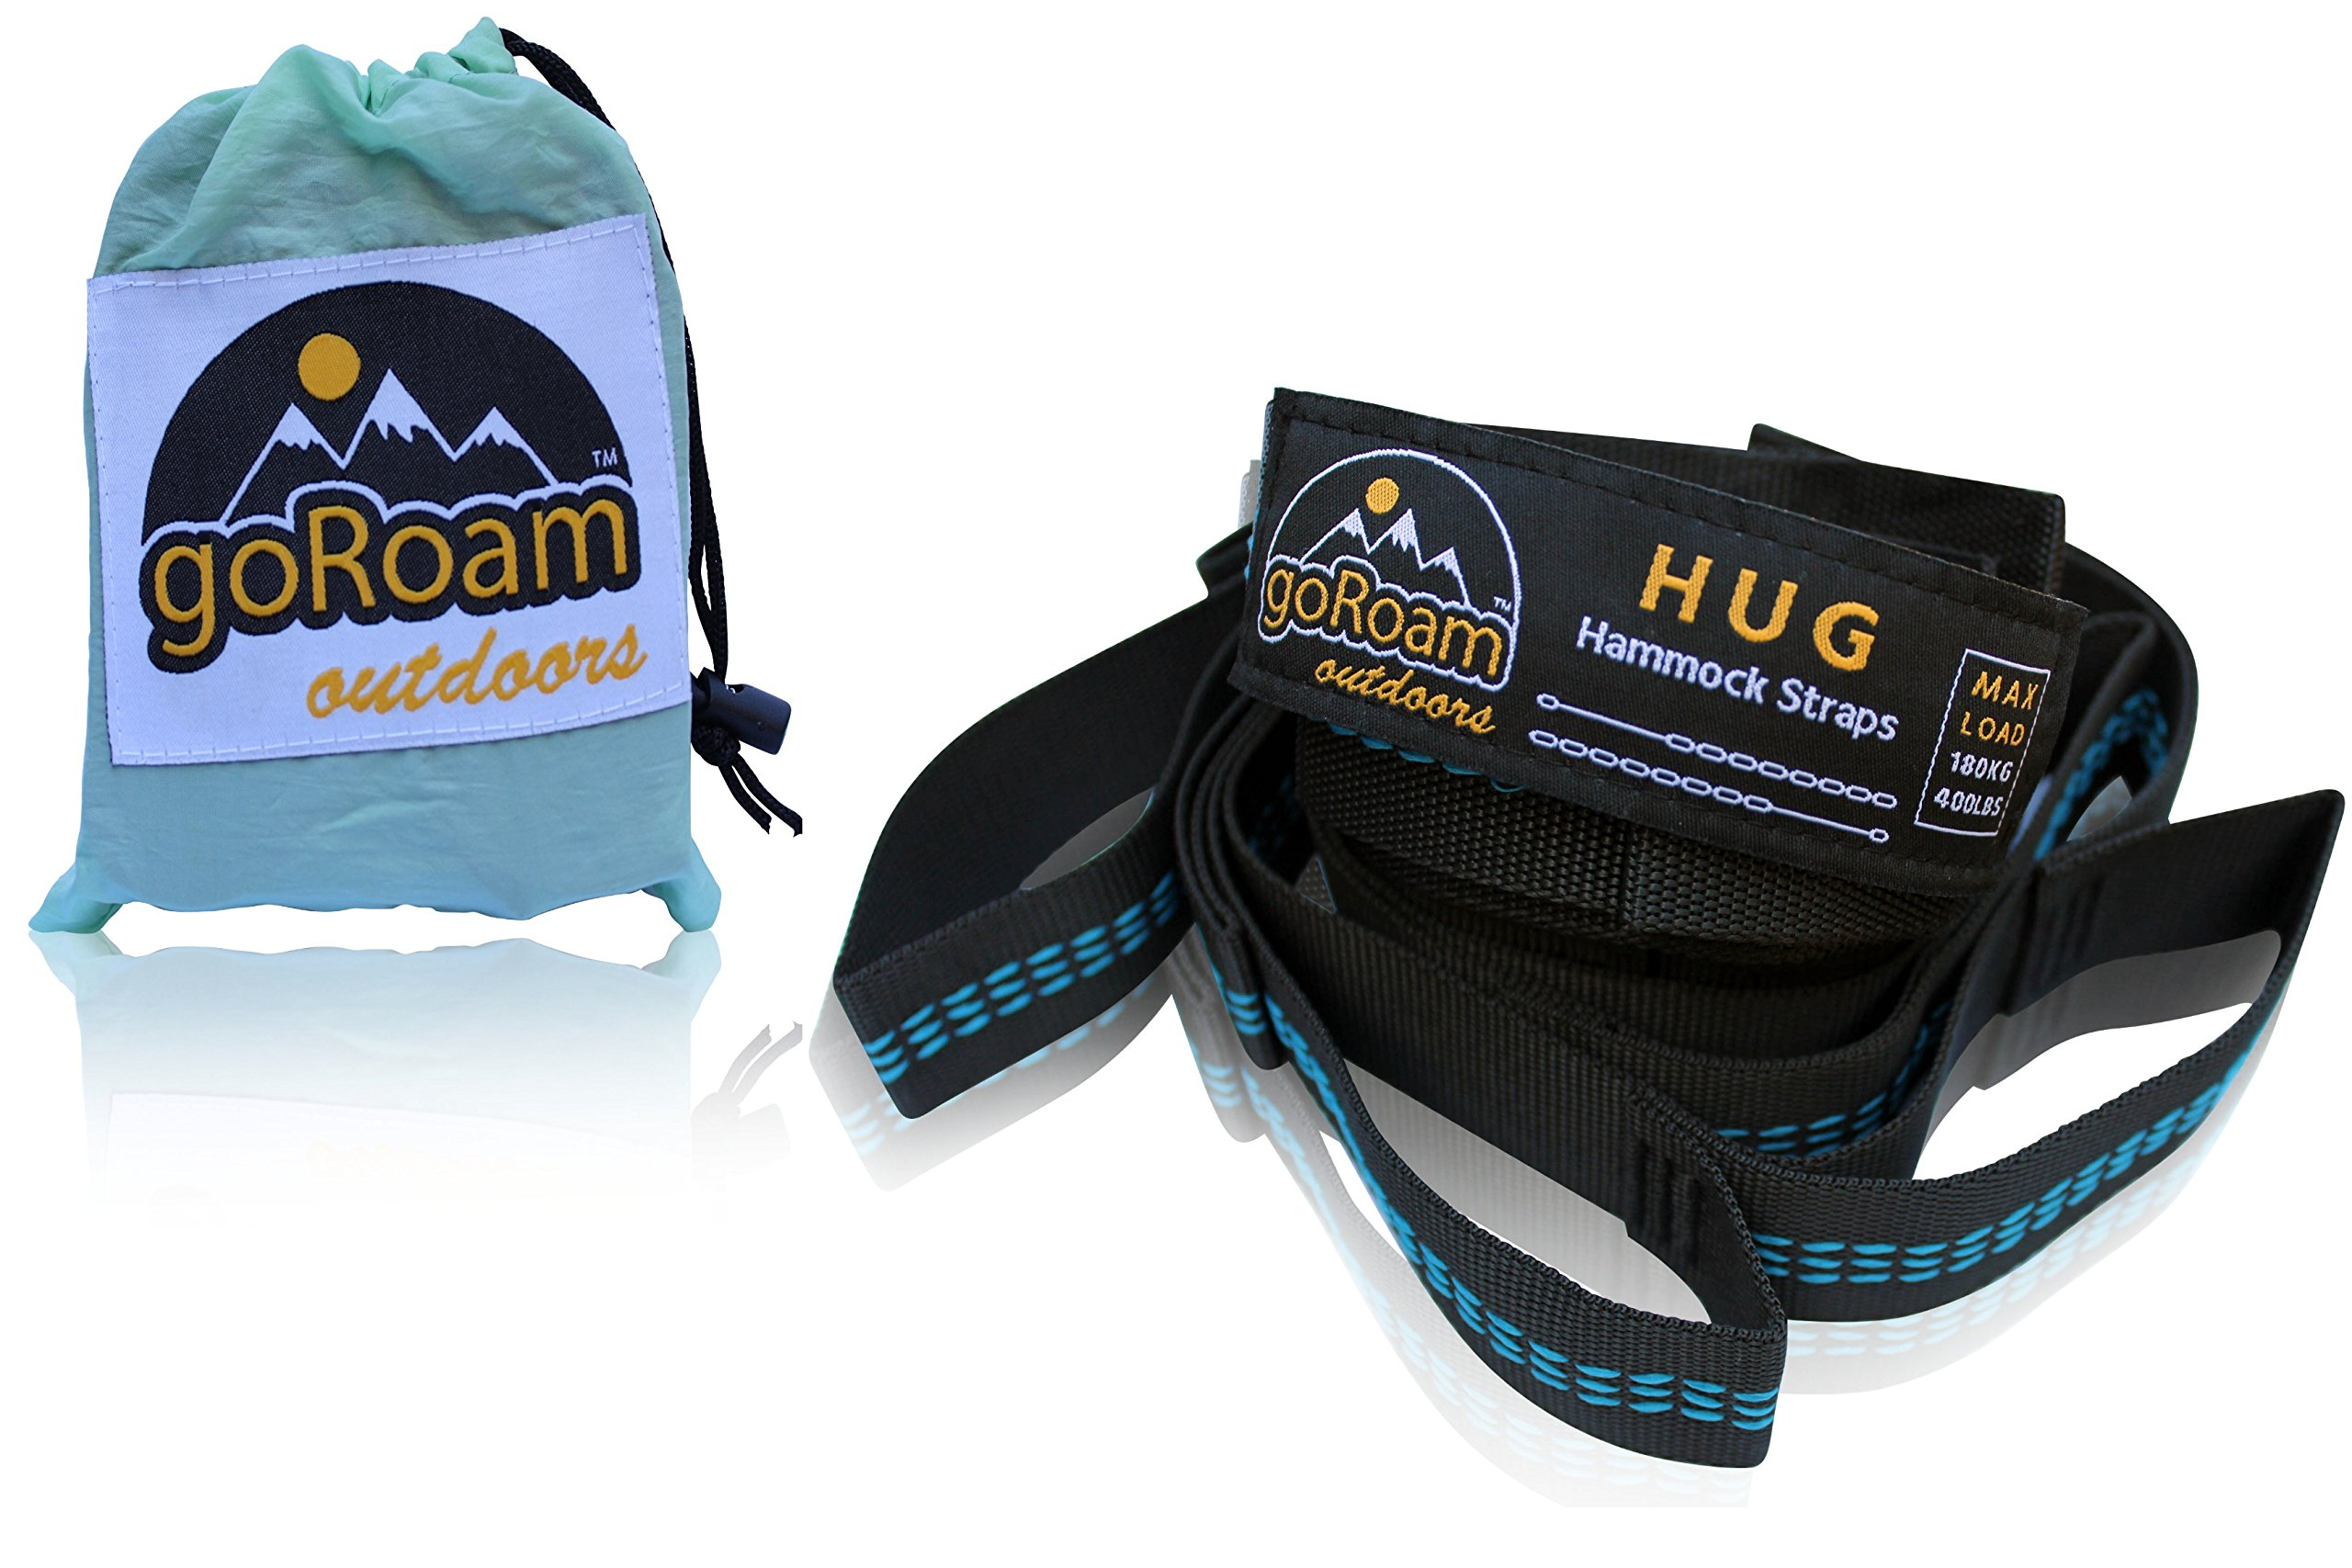 goRoam Outdoors HUG Hammock Straps Set Plus Carry Pouch. Strong Non-Stretch Polyester with 8 Loops for Fast & Easy Setup. Max load 400lbs/180kg Per Strap. (Black & Blue, 8 Loop Strap Set)